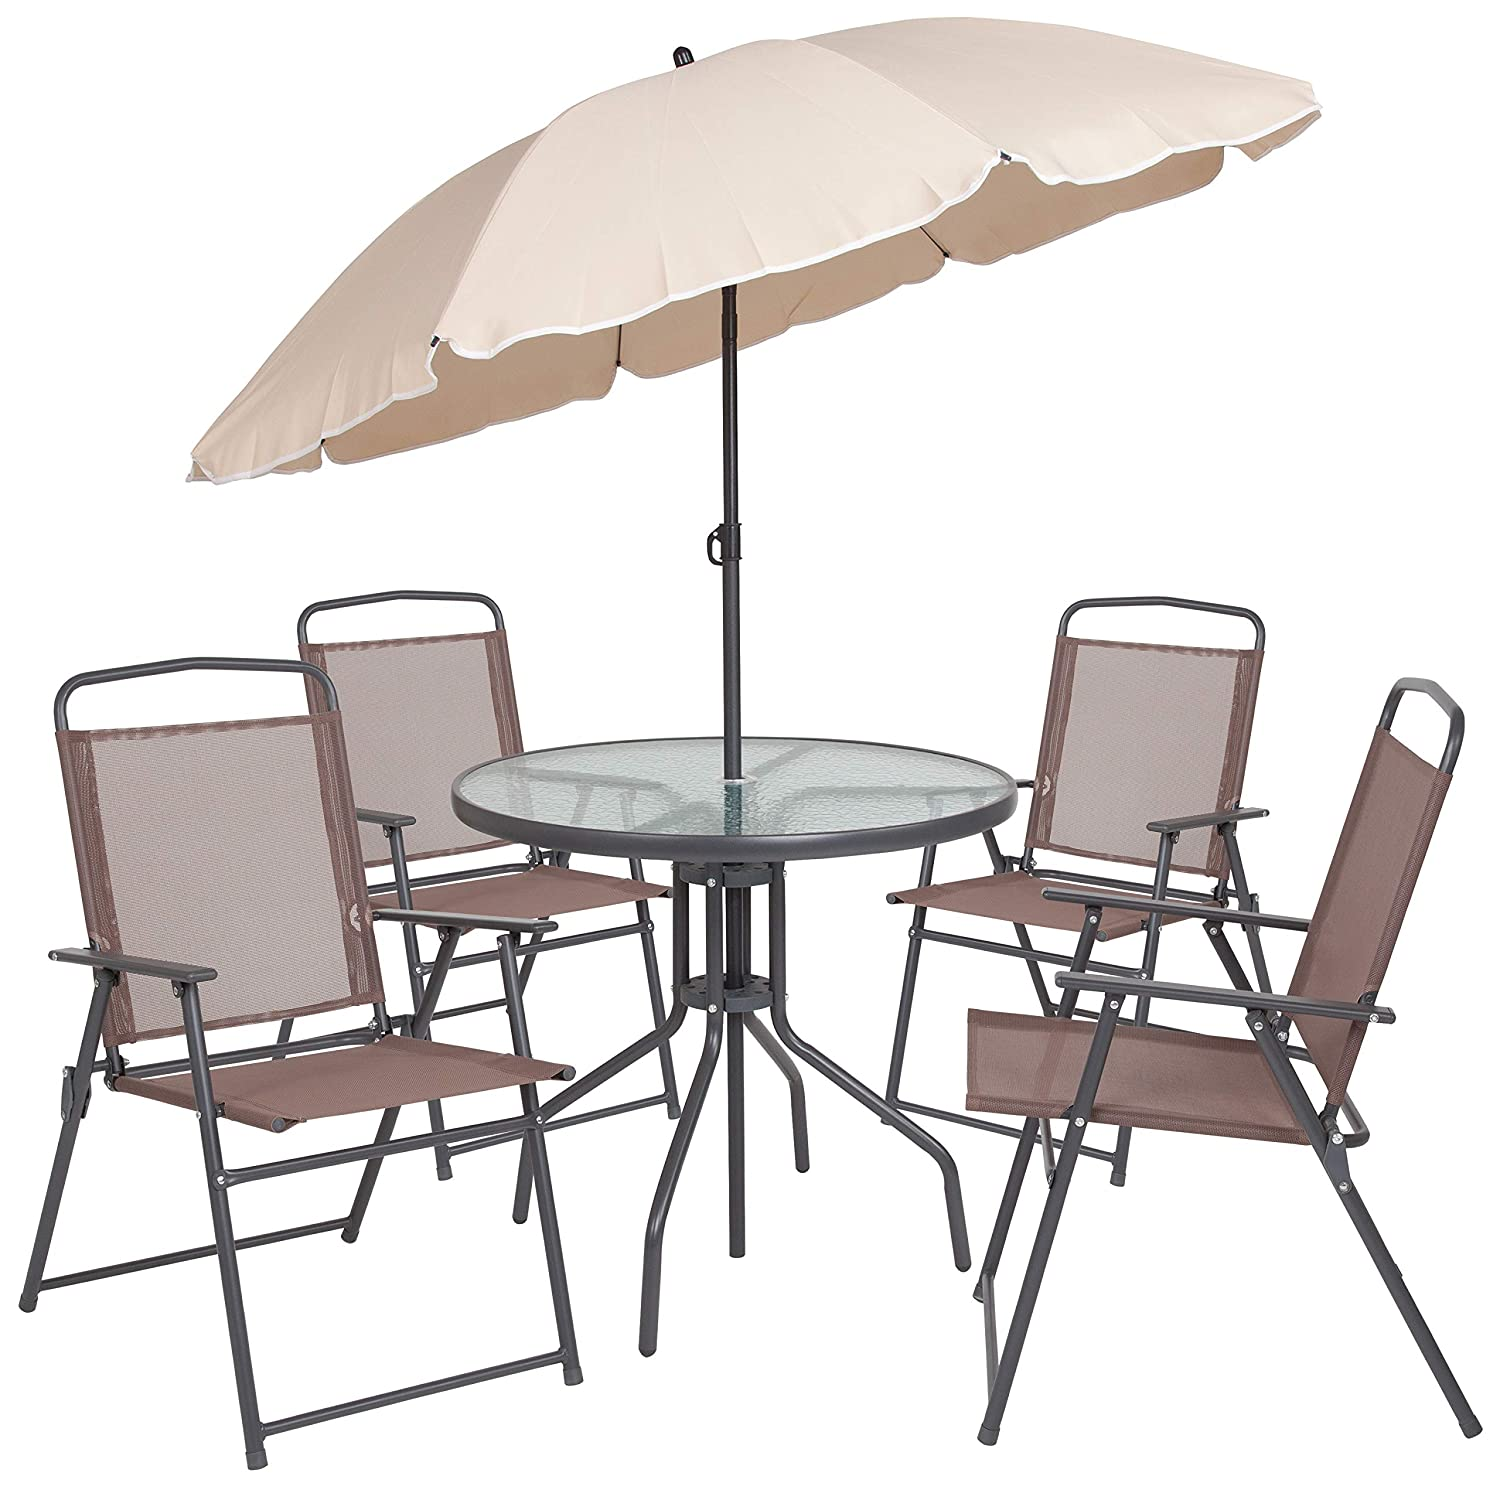 Sensational Flash Furniture Nantucket 6 Piece Brown Patio Garden Set With Table Tan Umbrella And 4 Folding Chairs Machost Co Dining Chair Design Ideas Machostcouk